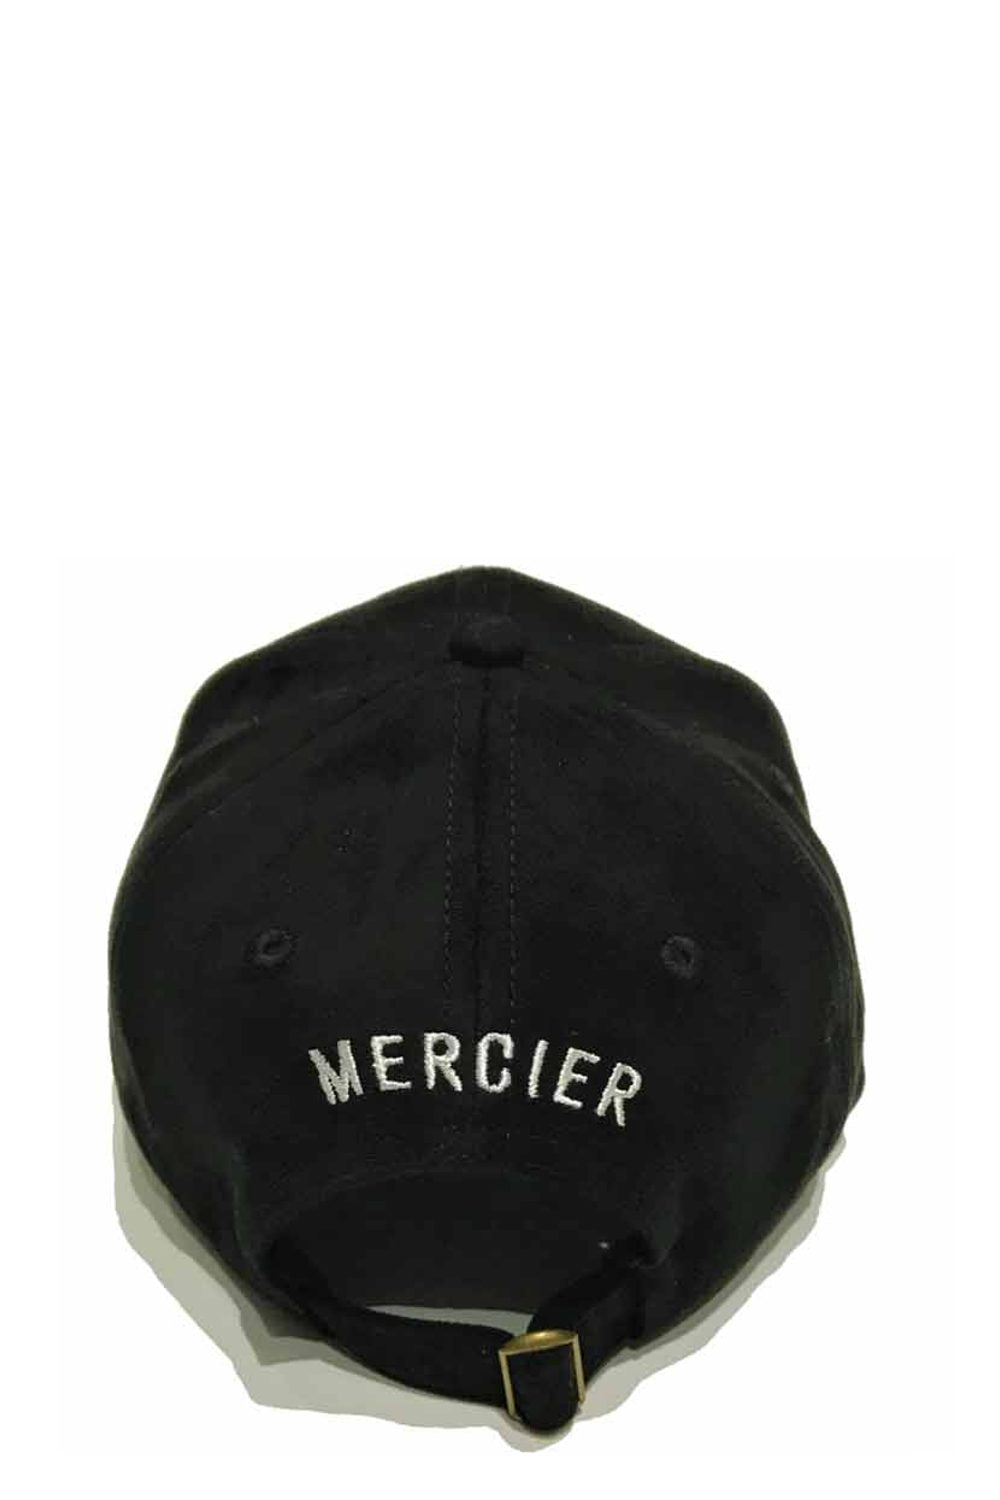 Mercier Signature Suede Trucker Cap - Black/White - 1